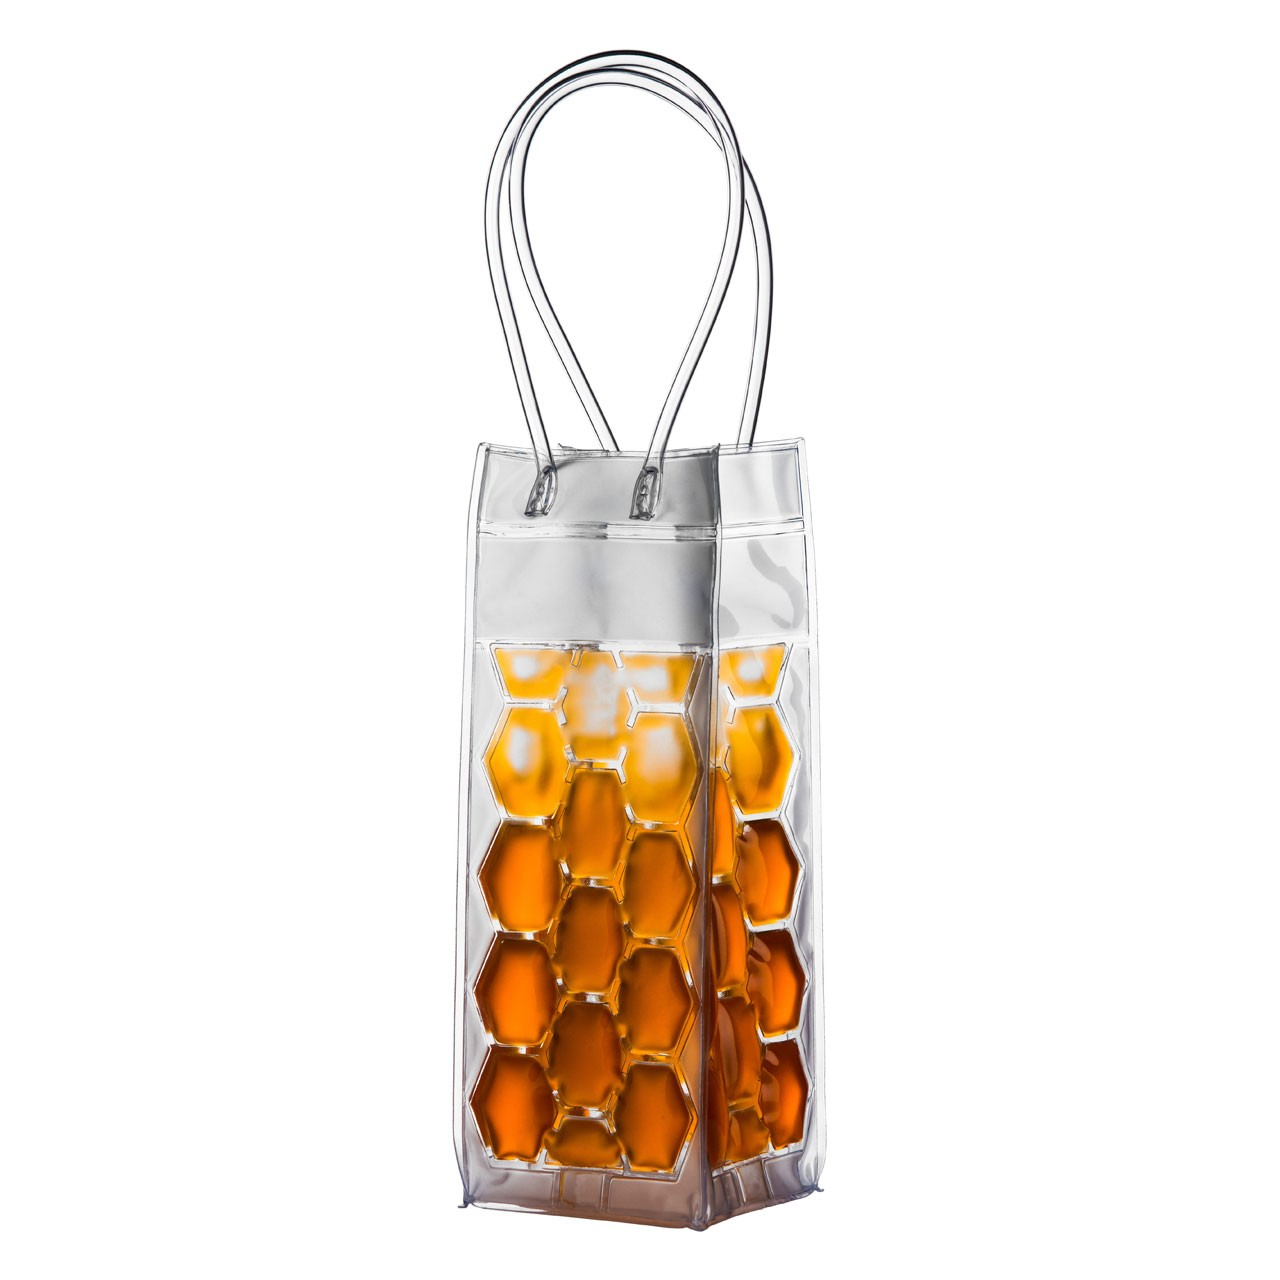 Prime Furnishing Wine Cooler Bag with Handles - Orange